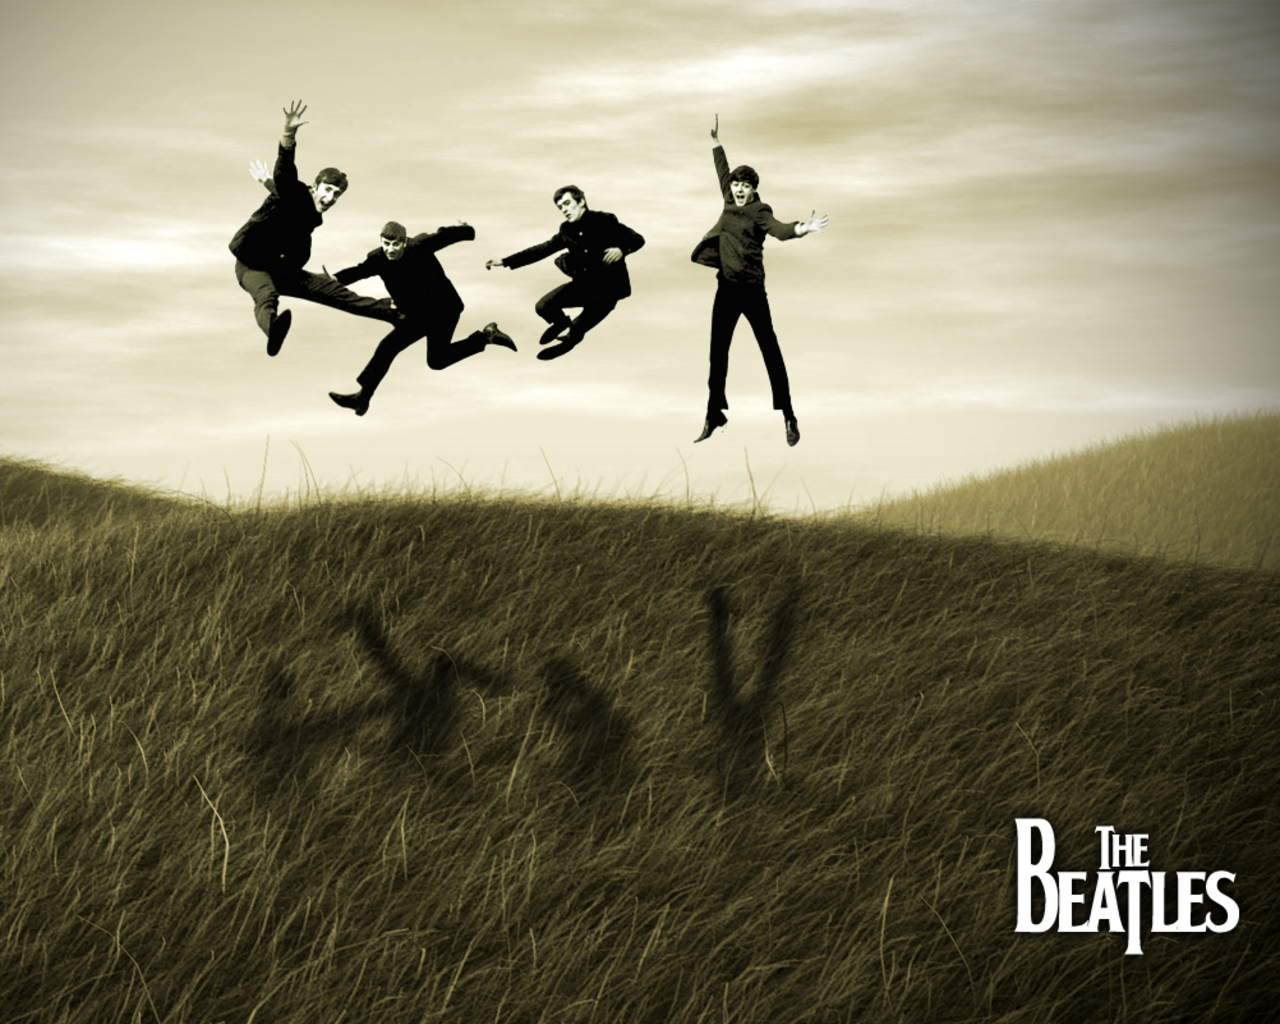 the Beatles achtergrond